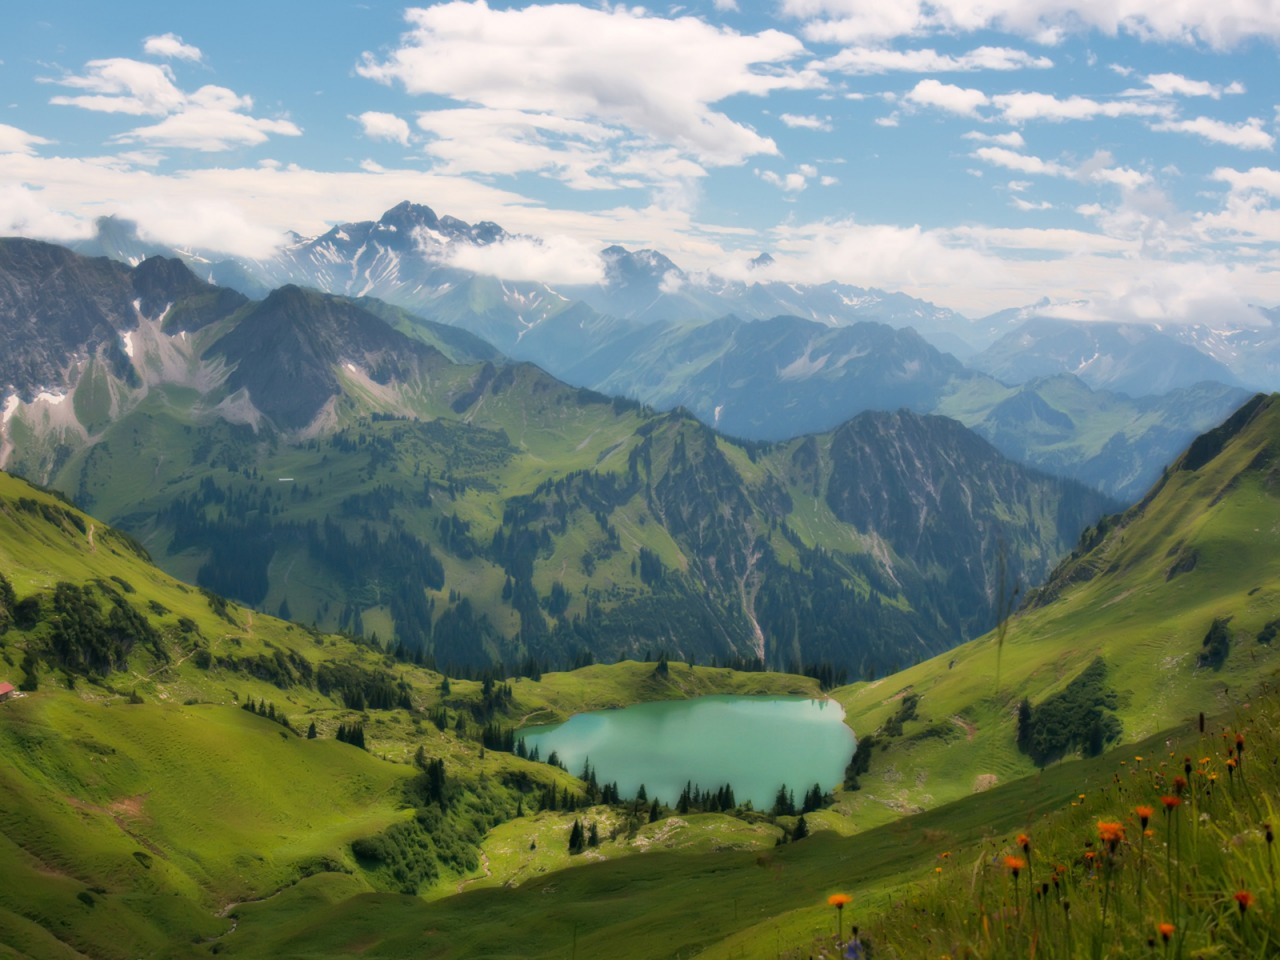 Lake In The Alps Wallpaper Landscape Nature Wallpaper (1280x960